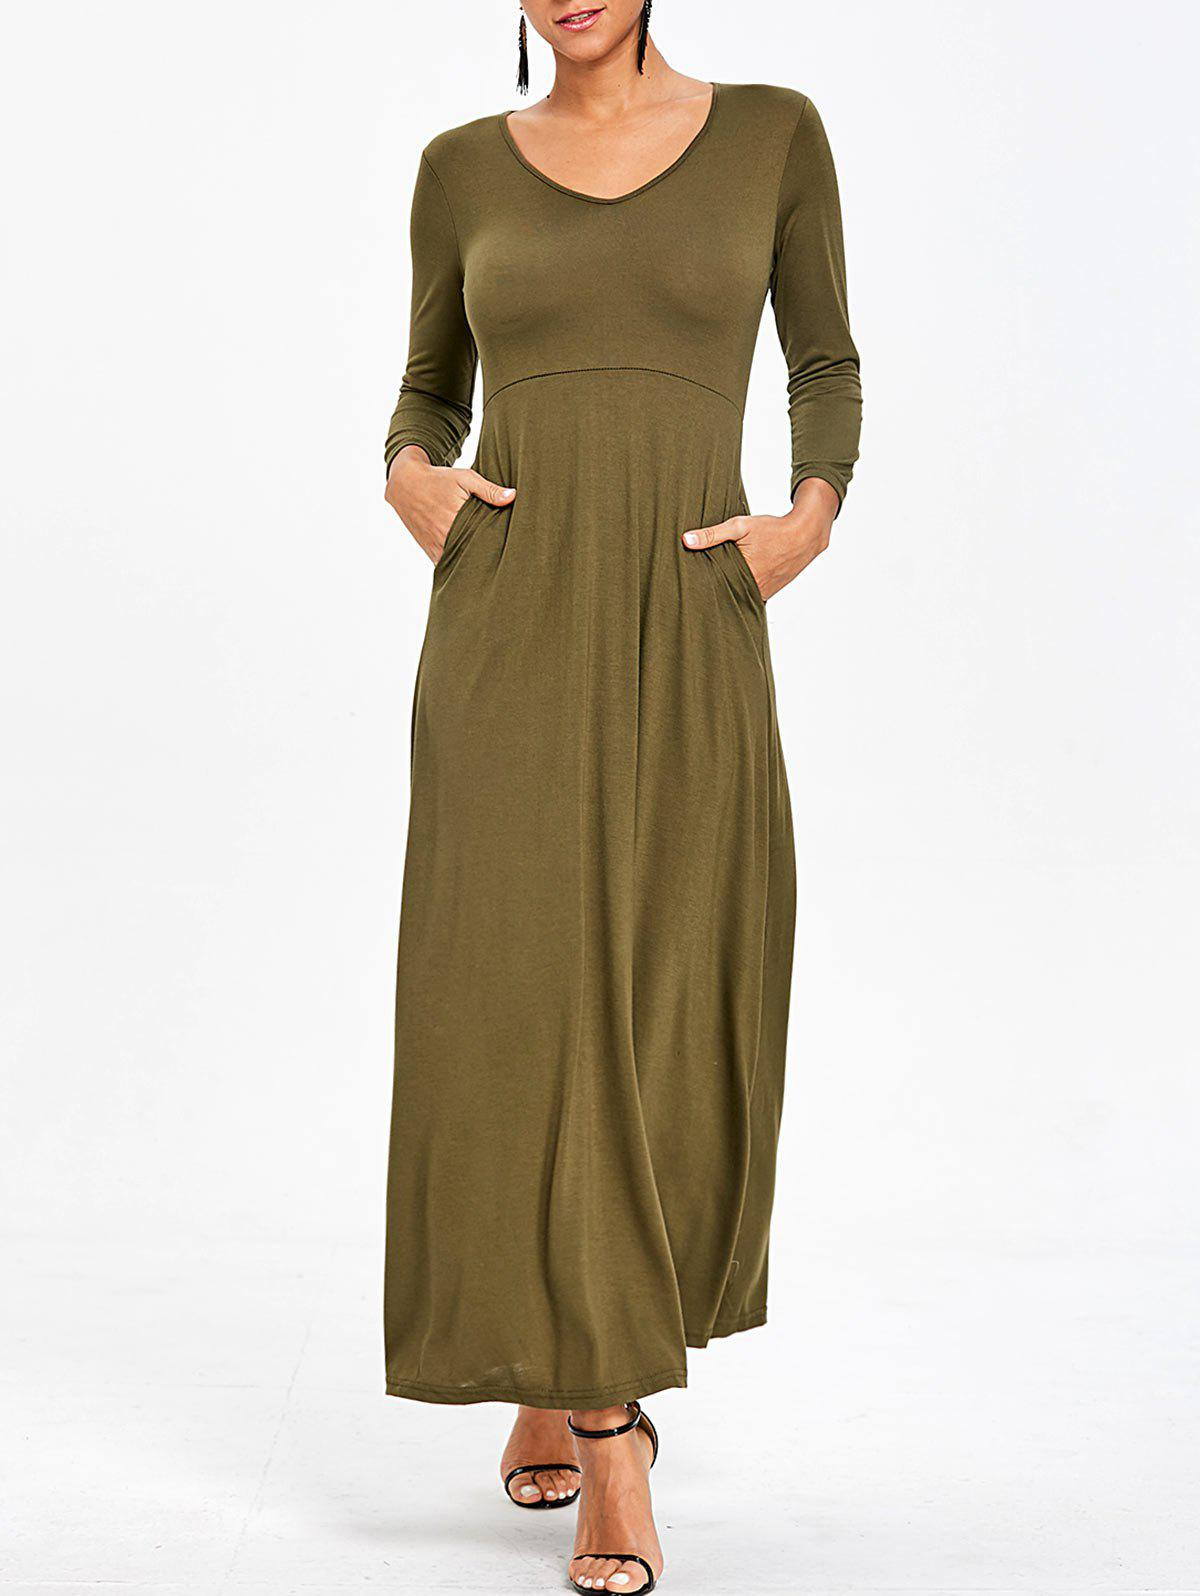 Shop Empire Waist V Neck Maxi Dress with Pockets